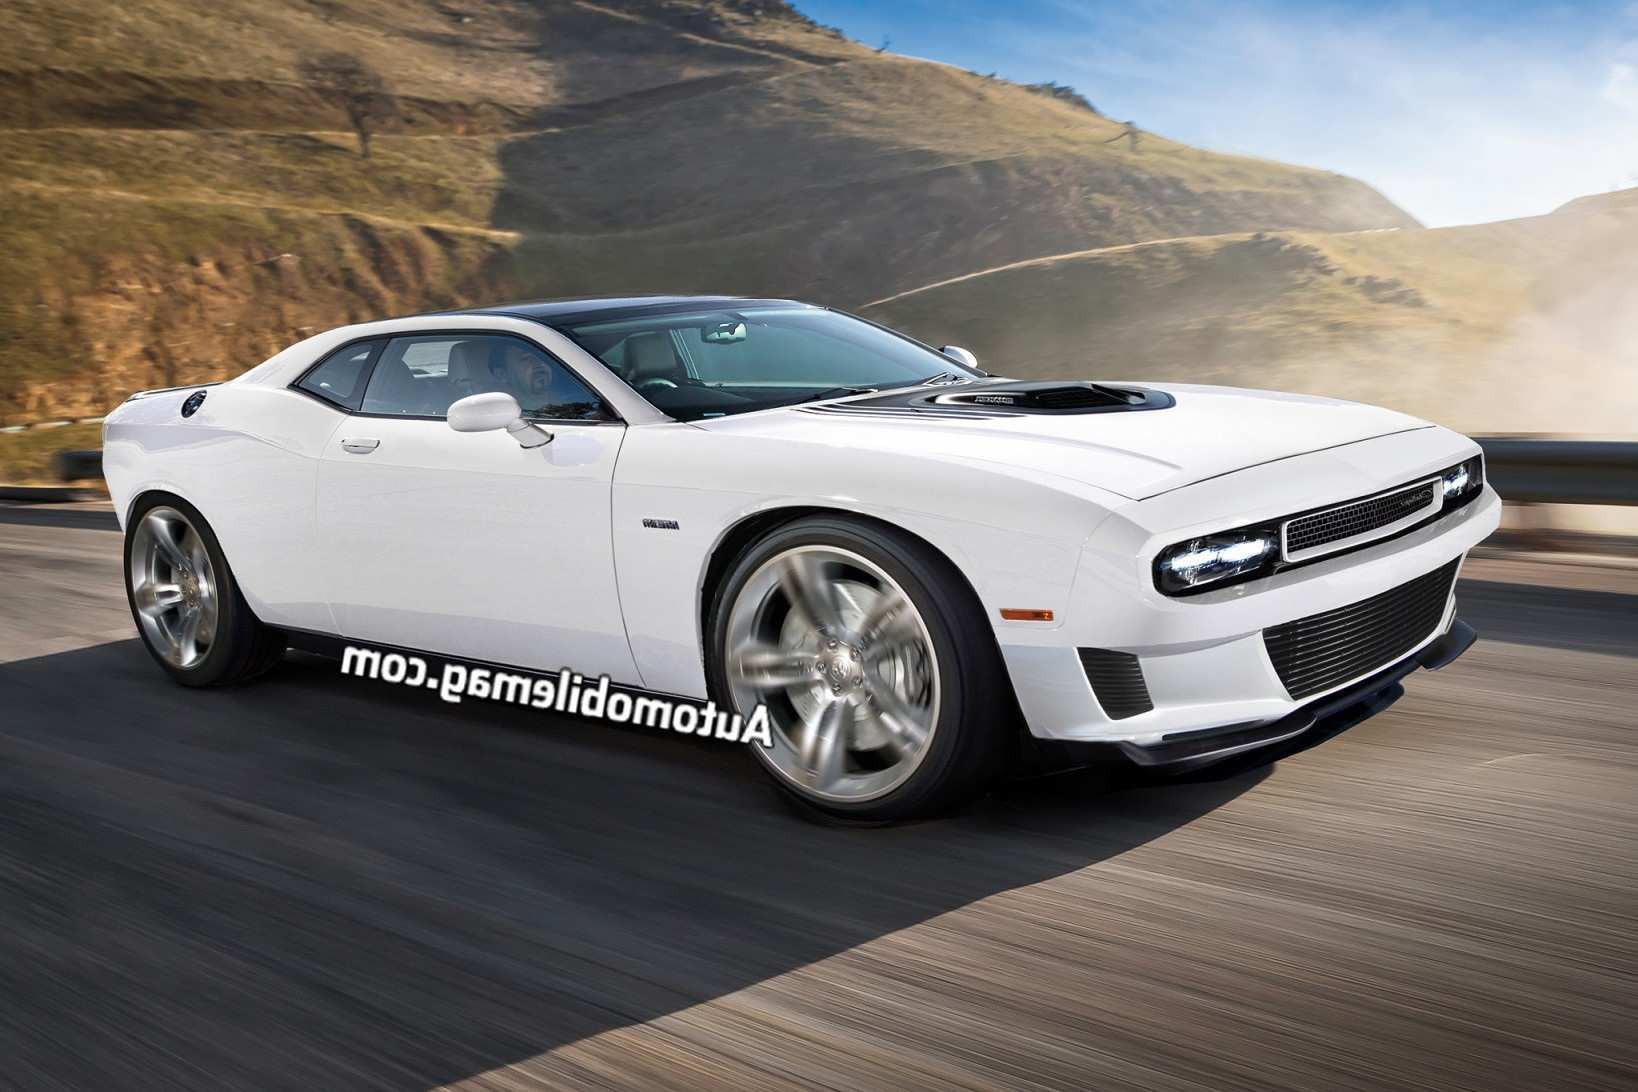 51 Concept of Images Of 2020 Dodge Challenger New Concept for Images Of 2020 Dodge Challenger